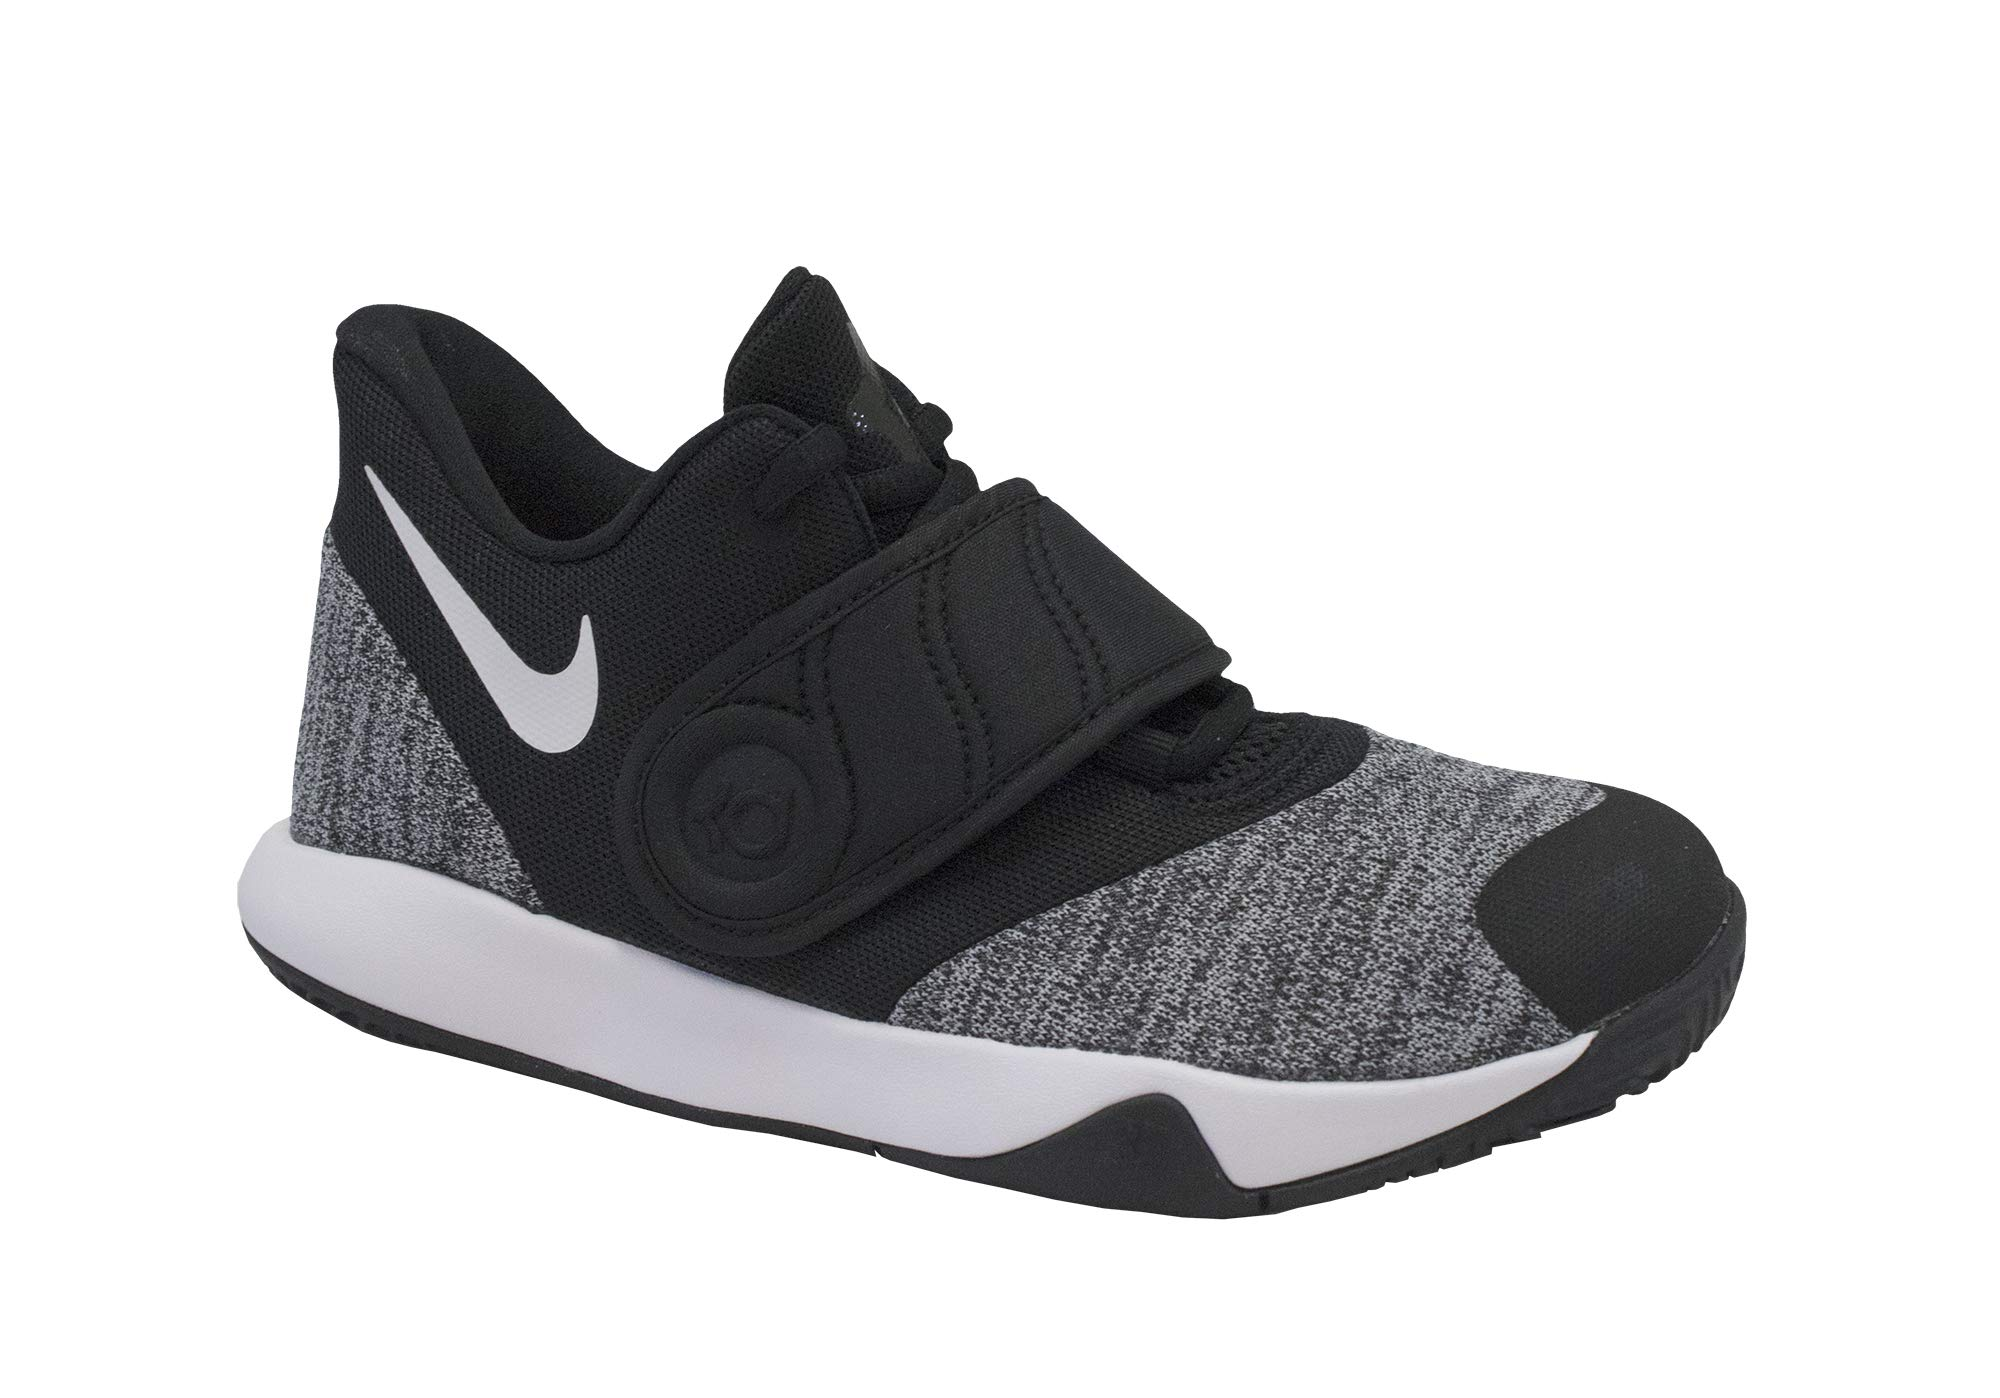 baf4f5d192a5 Galleon - Nike Boy s KD Trey 5 VI (PS) Basketball Shoe Black White Size 12 Kids  US